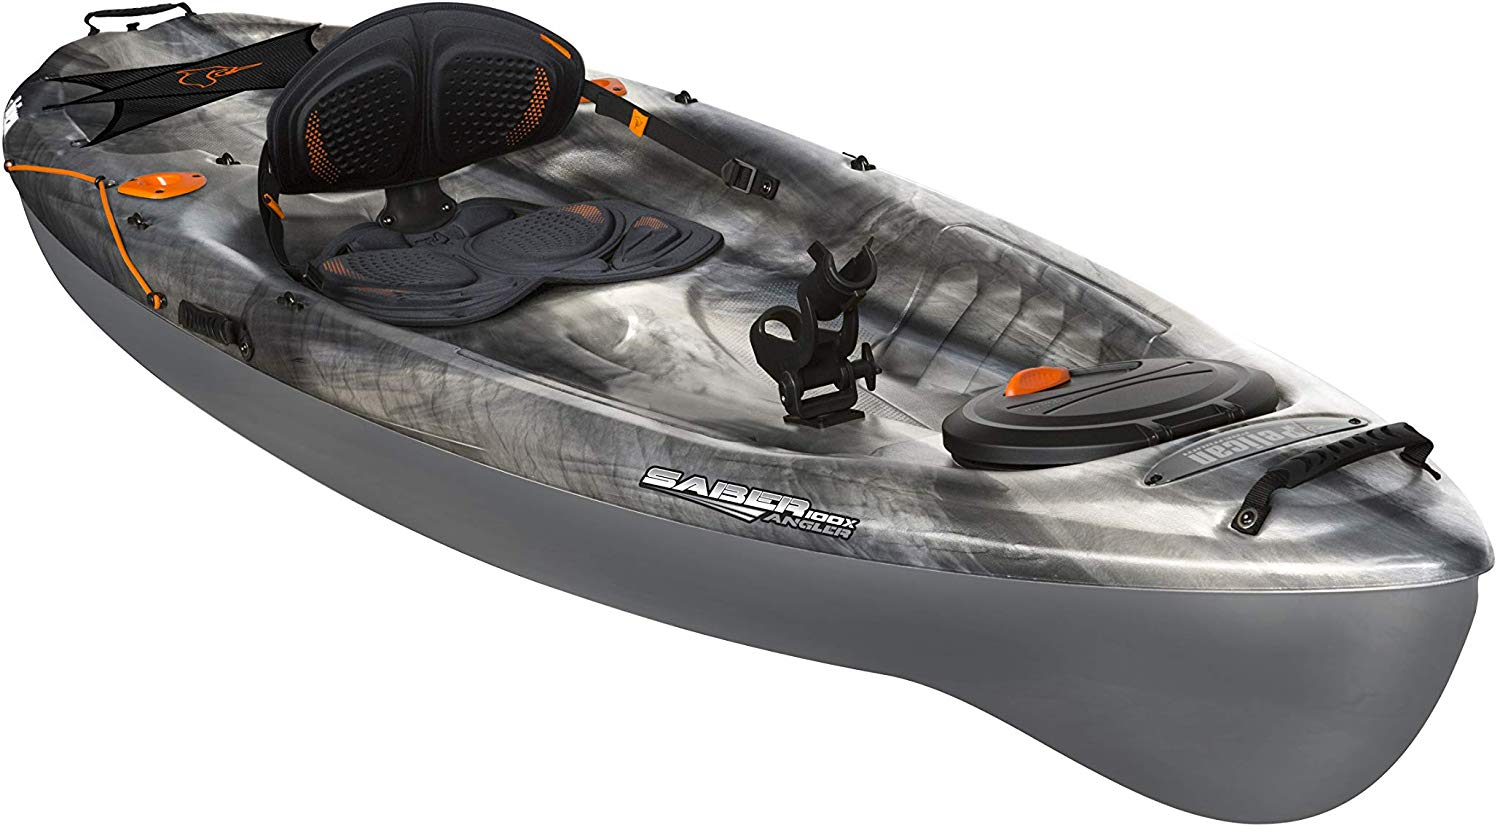 Best Pelican Kayak?